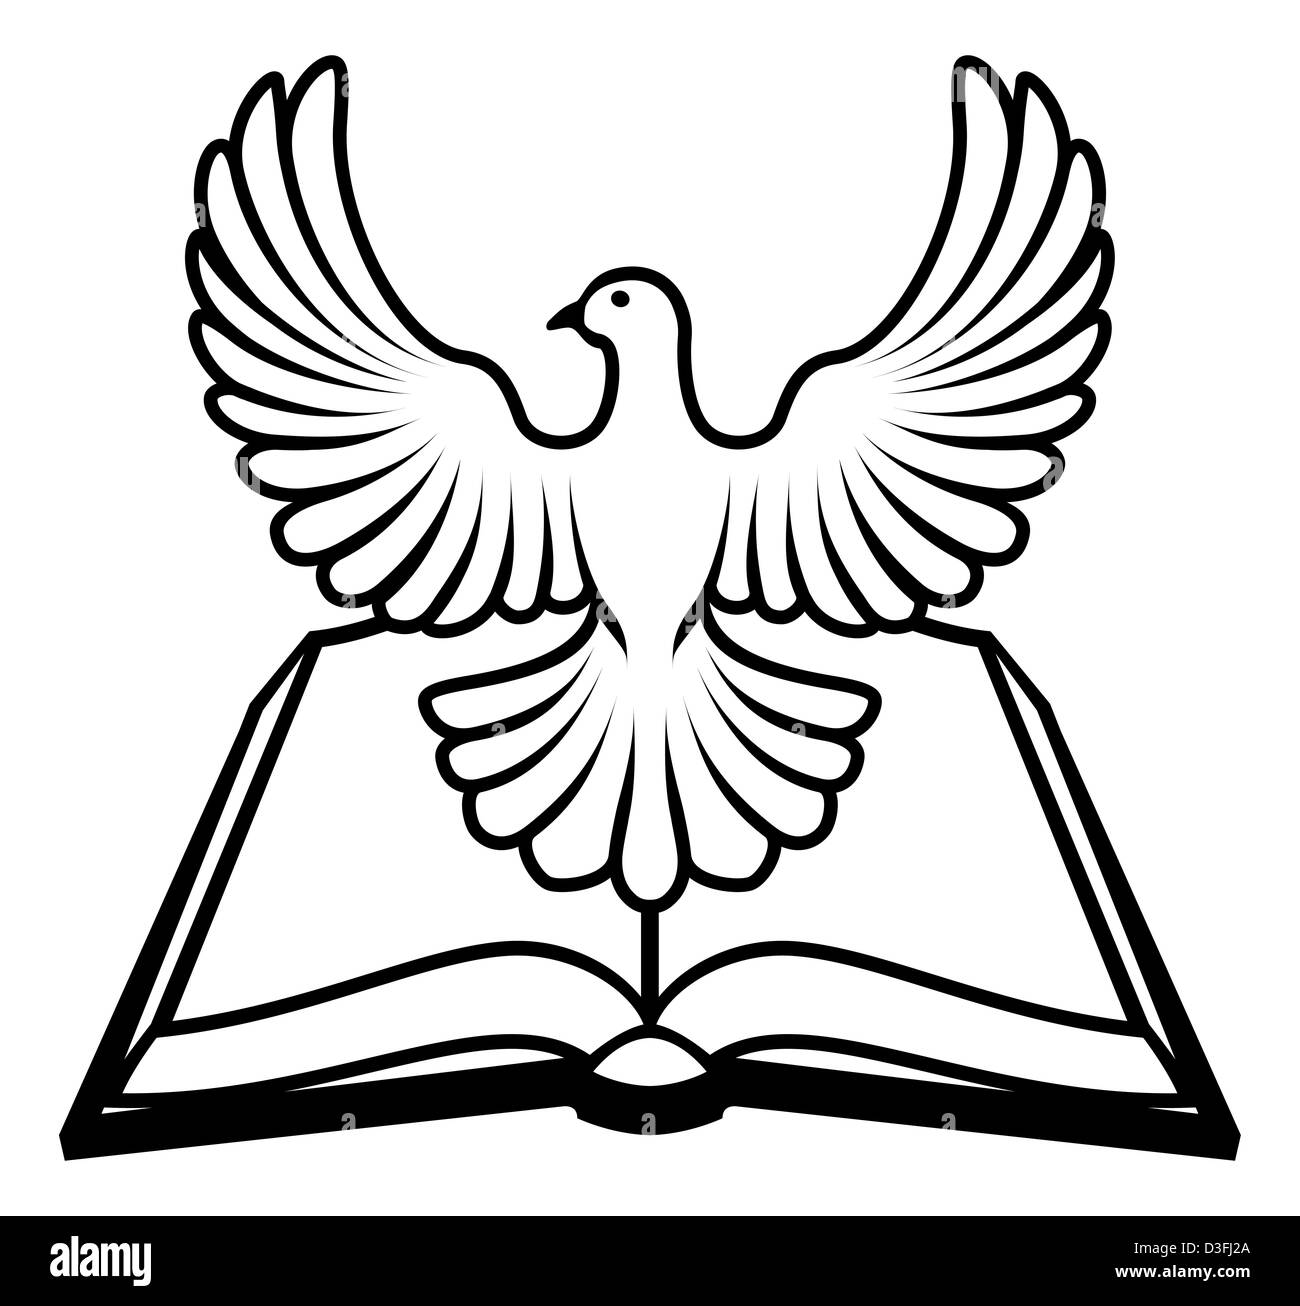 christian bible with the holy spirit in the form of a white dove